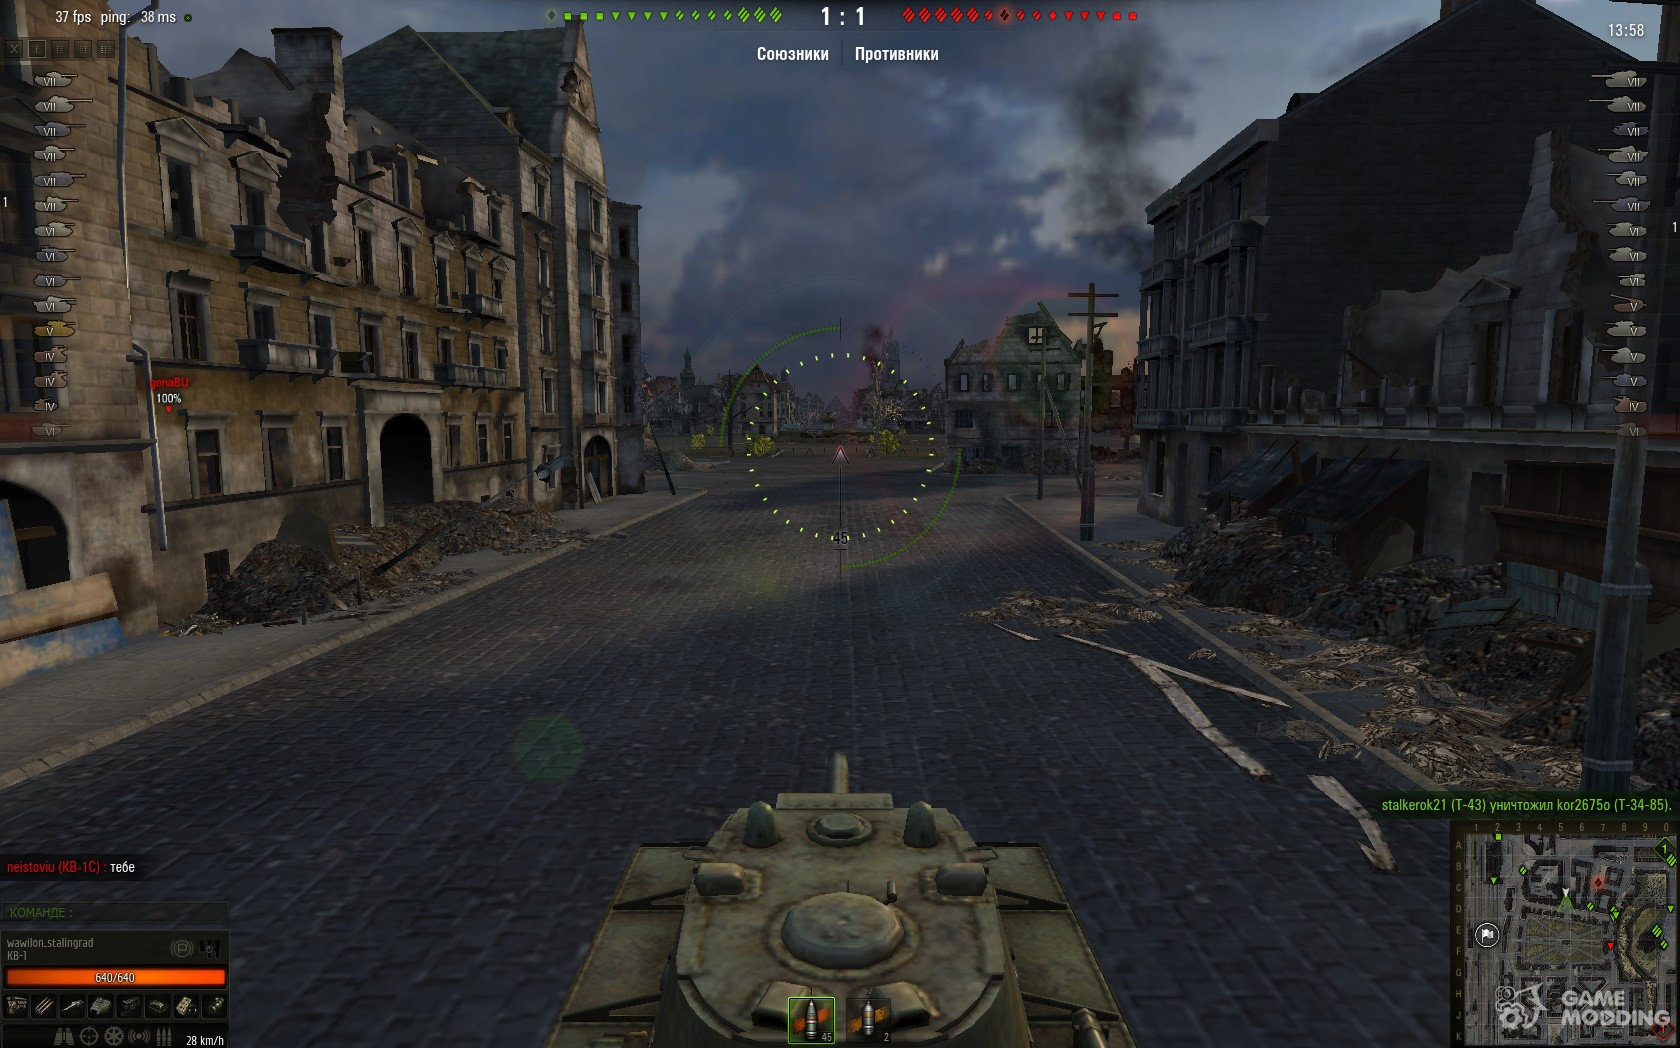 world of tanks panel mod